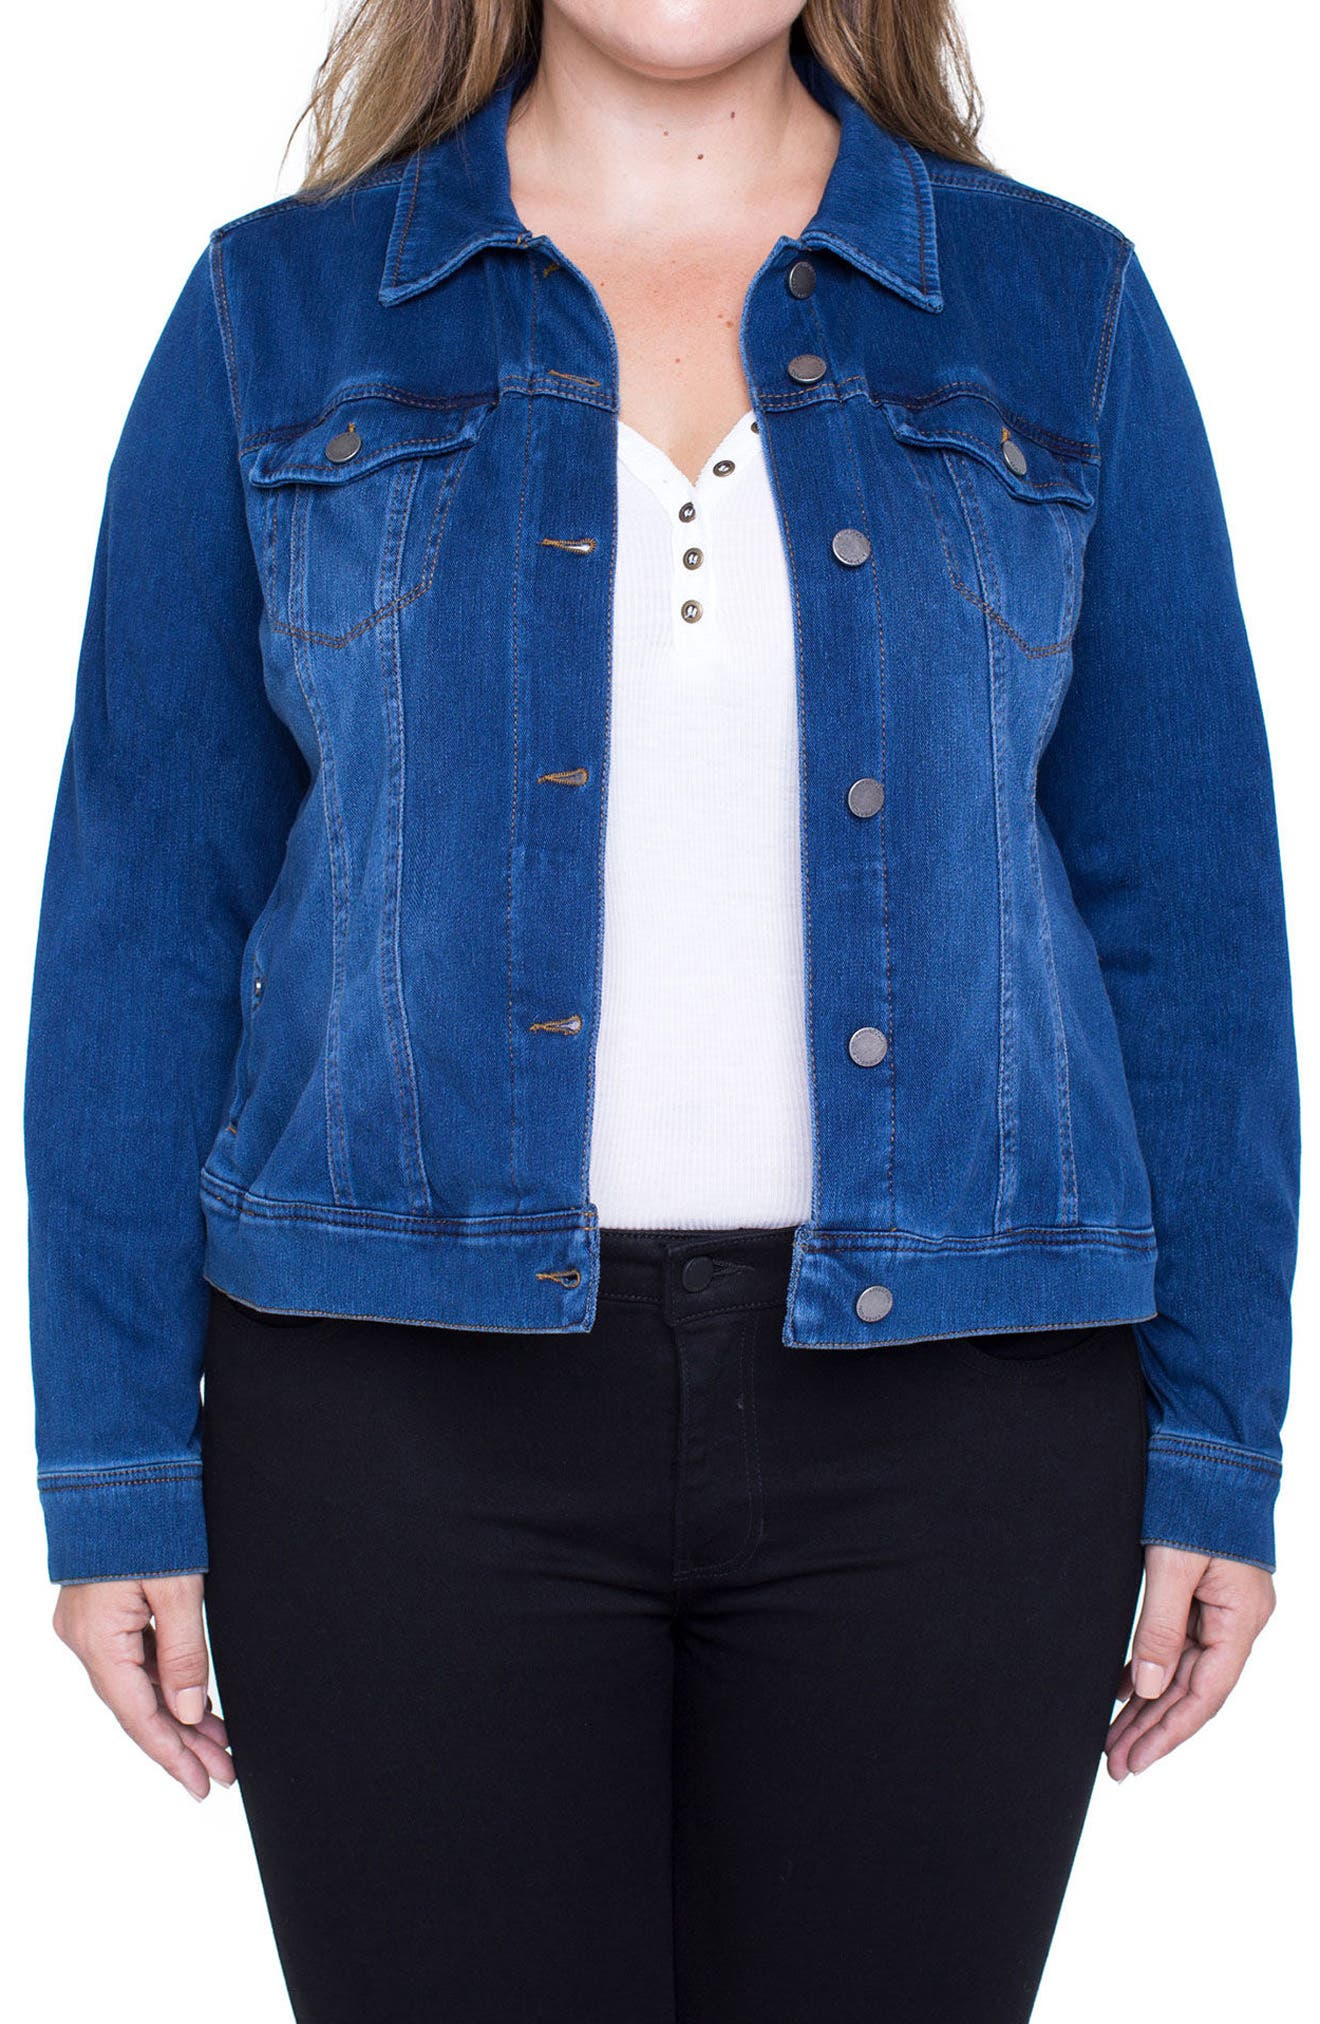 Main Image - Liverpool Jeans Company Denim Knit Jacket (Plus Size)